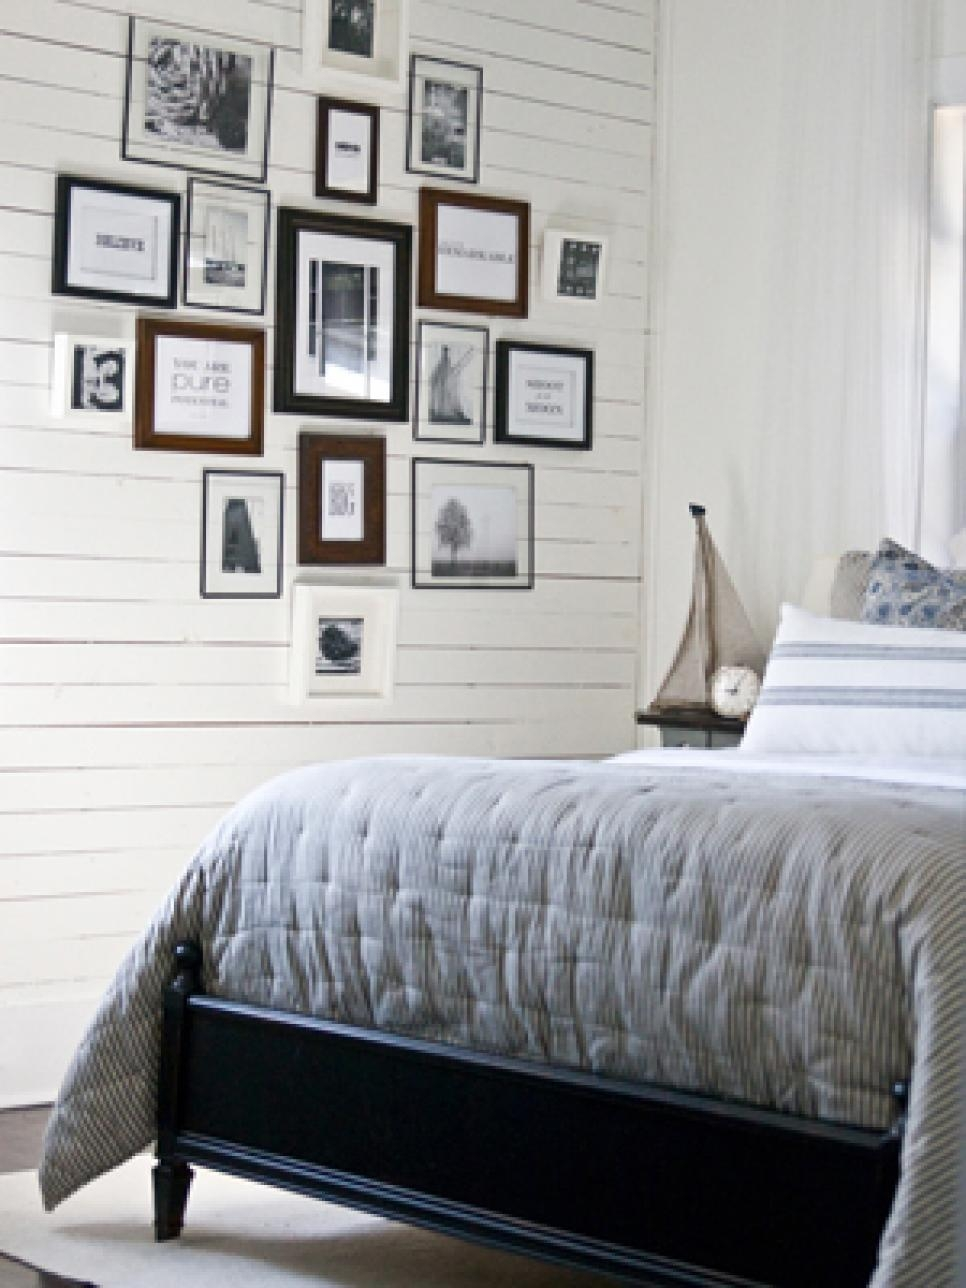 10 Ways To Display Bedroom Frames | Hgtv in Bedroom Framed Wall Art